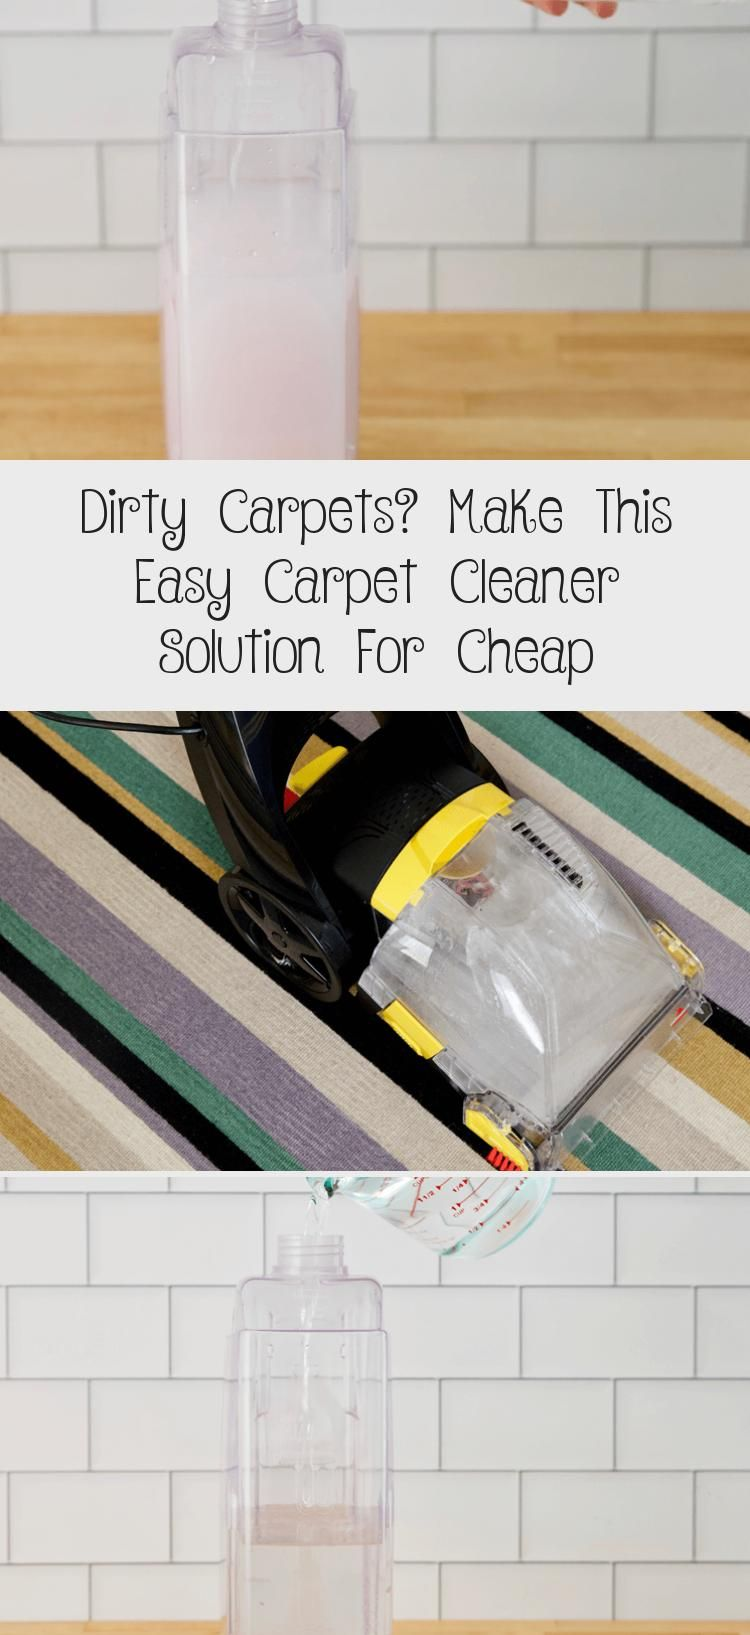 Learn How To Make A Homemade Carpet Cleaner Solution That Works Wonders Not Only Will In 2020 Carpet Cleaner Solution Carpet Cleaners Homemade Carpet Cleaner Solution